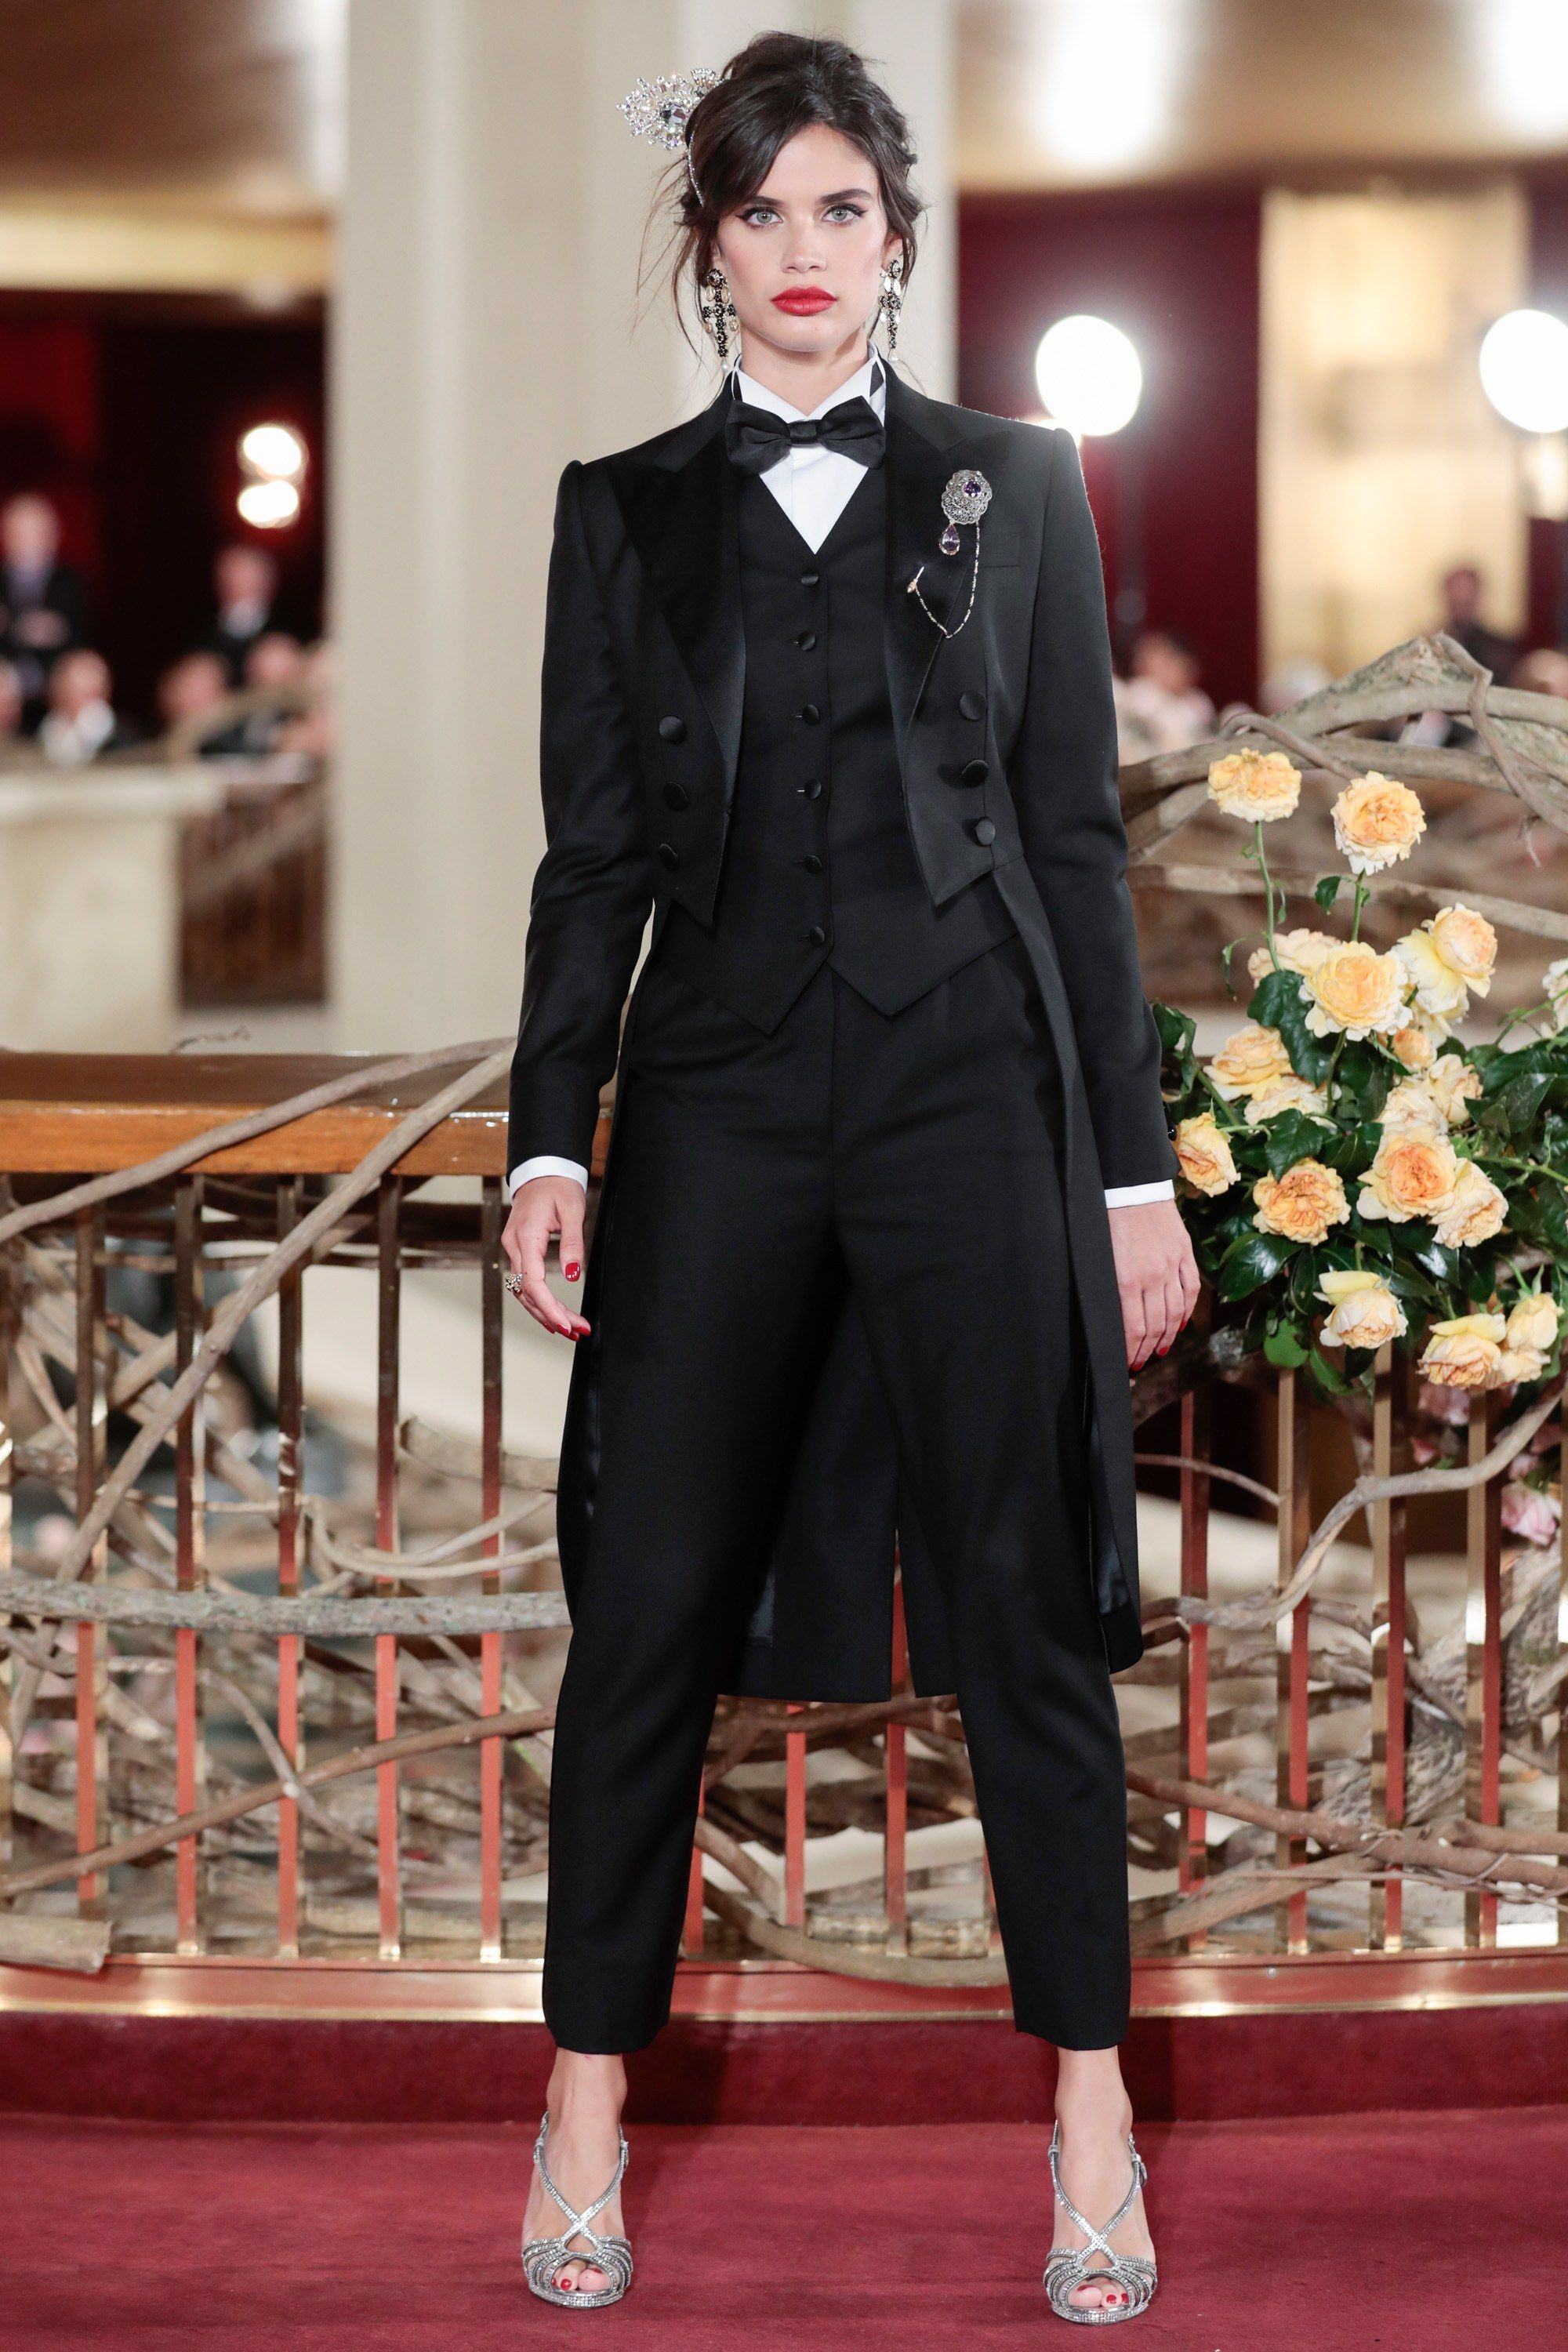 Dolce Gabbana Gives Its Alta Moda Clients A Night At The Opera The Metropolitan Opera Tuxedo Women Dolce And Gabbana Suits Dolce And Gabbana